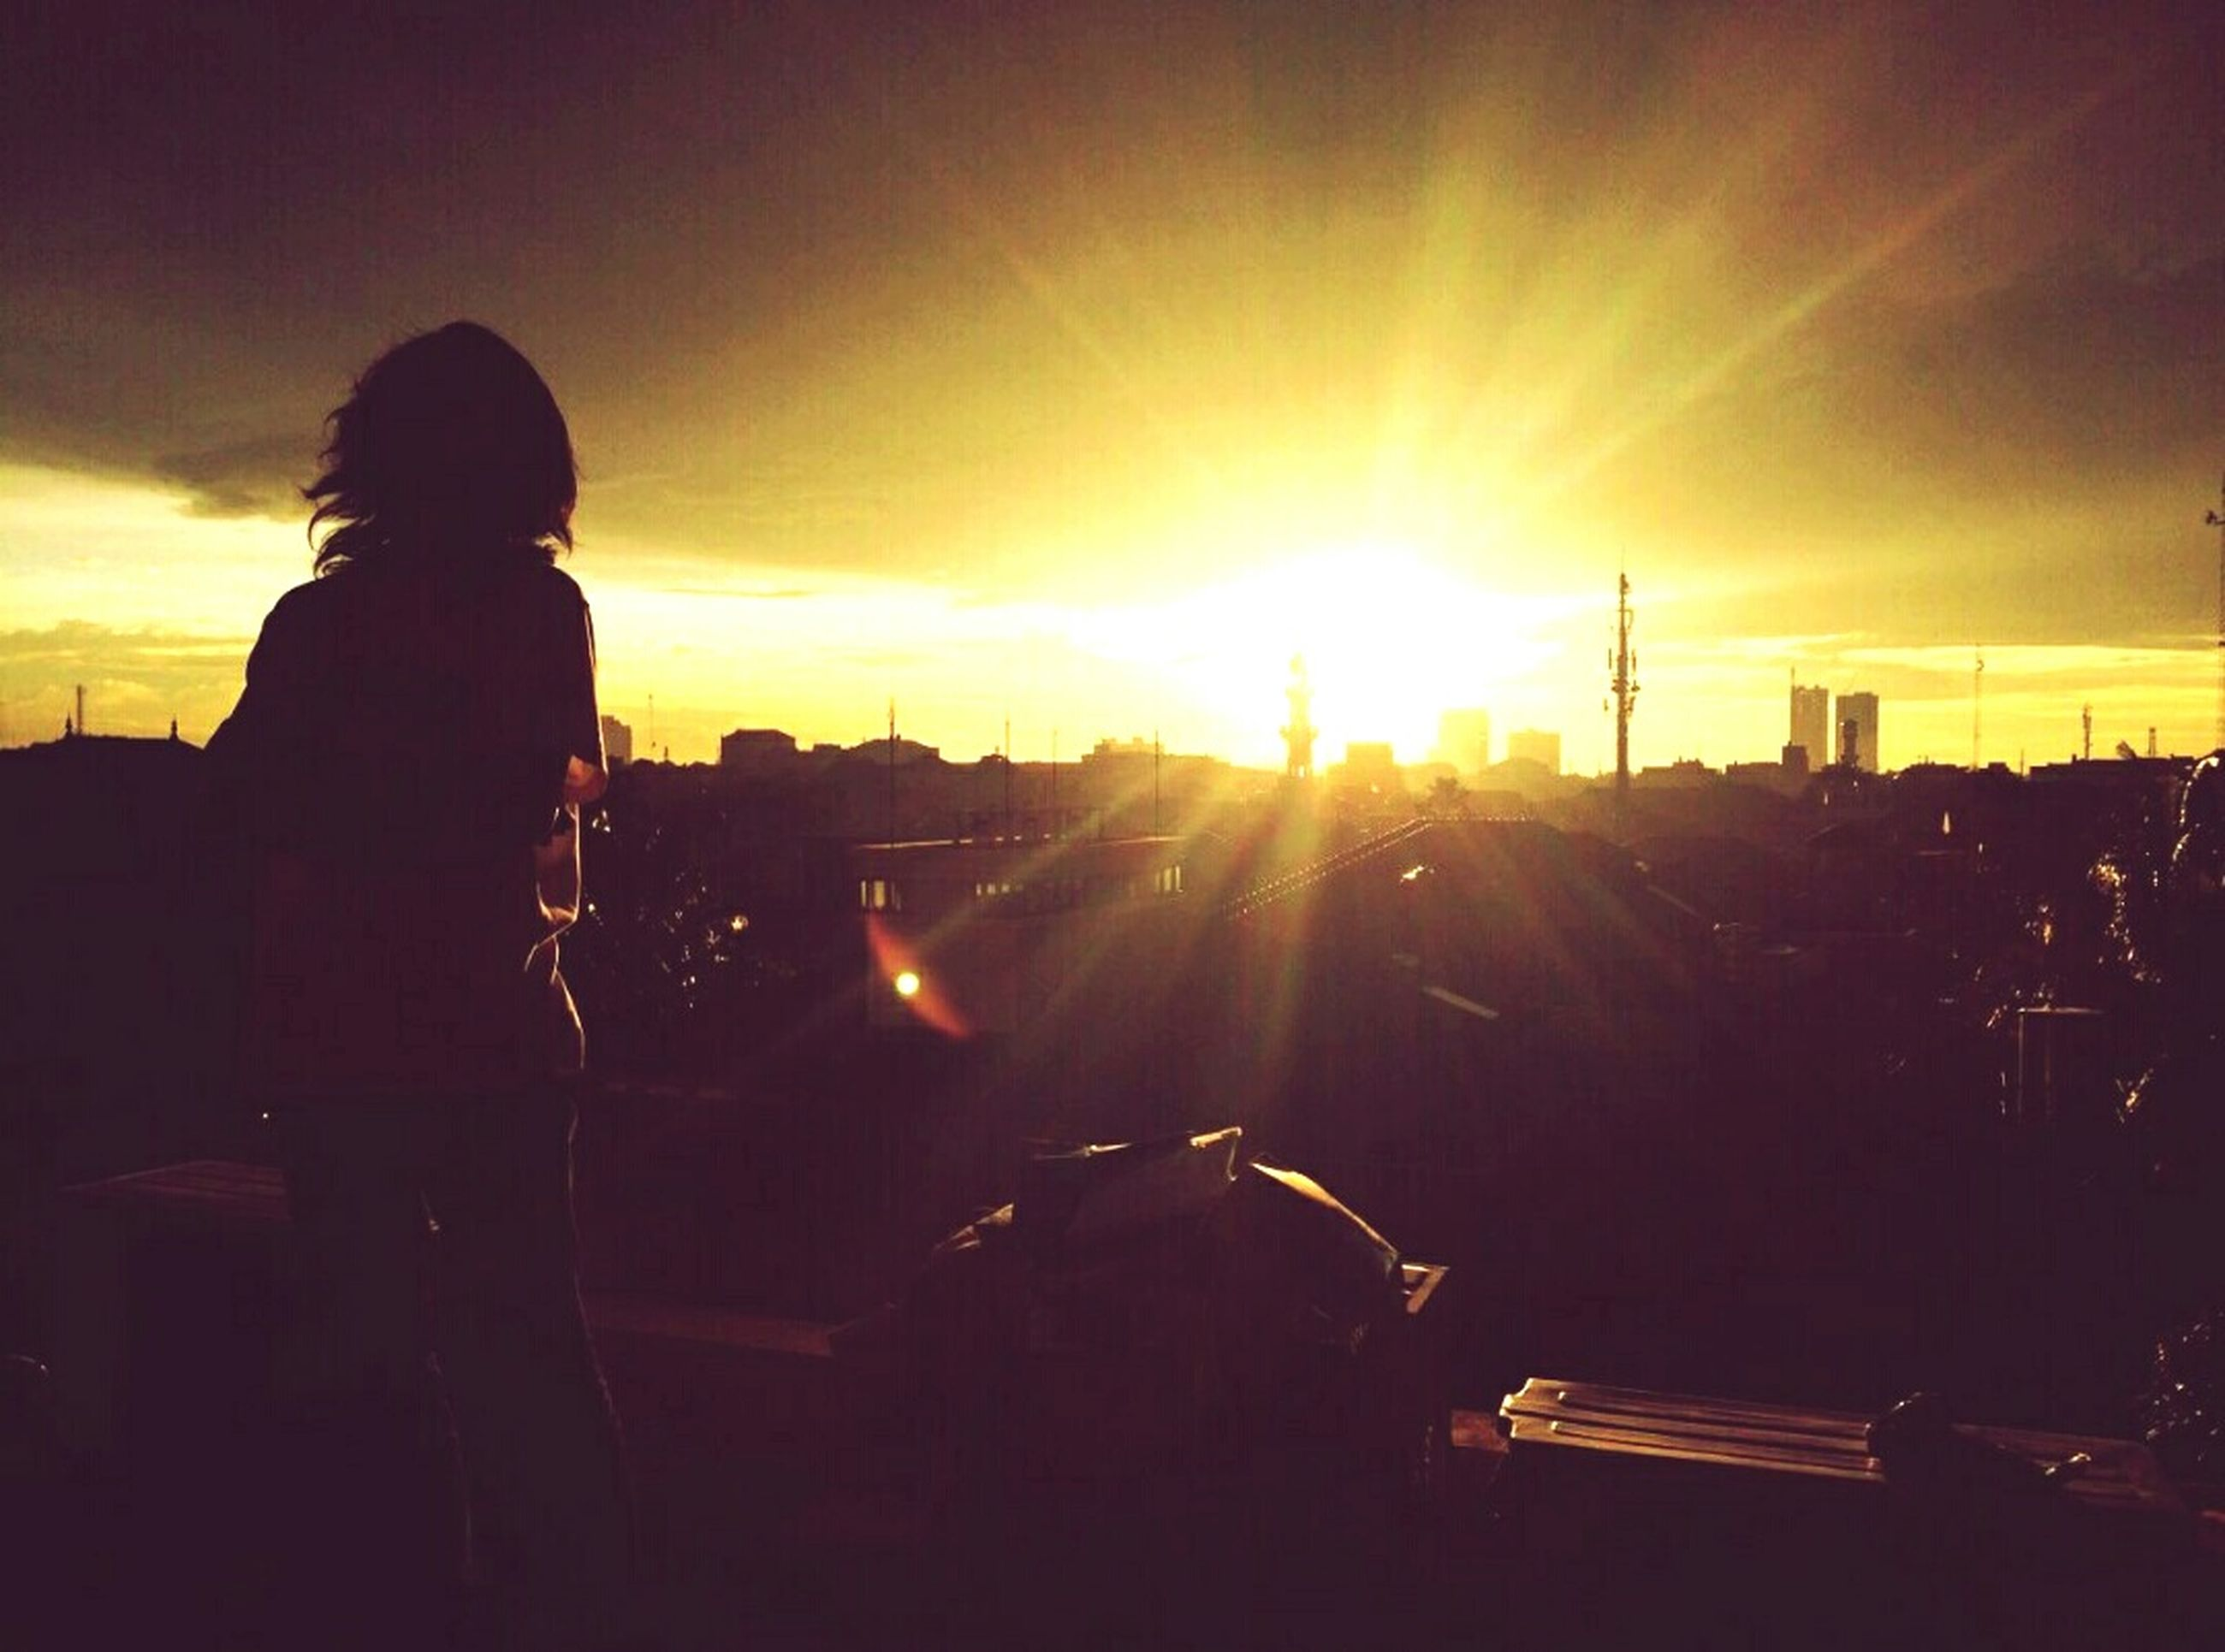 sunset, real people, sunlight, transportation, one person, sun, silhouette, rear view, sky, standing, lifestyles, outdoors, nature, day, people